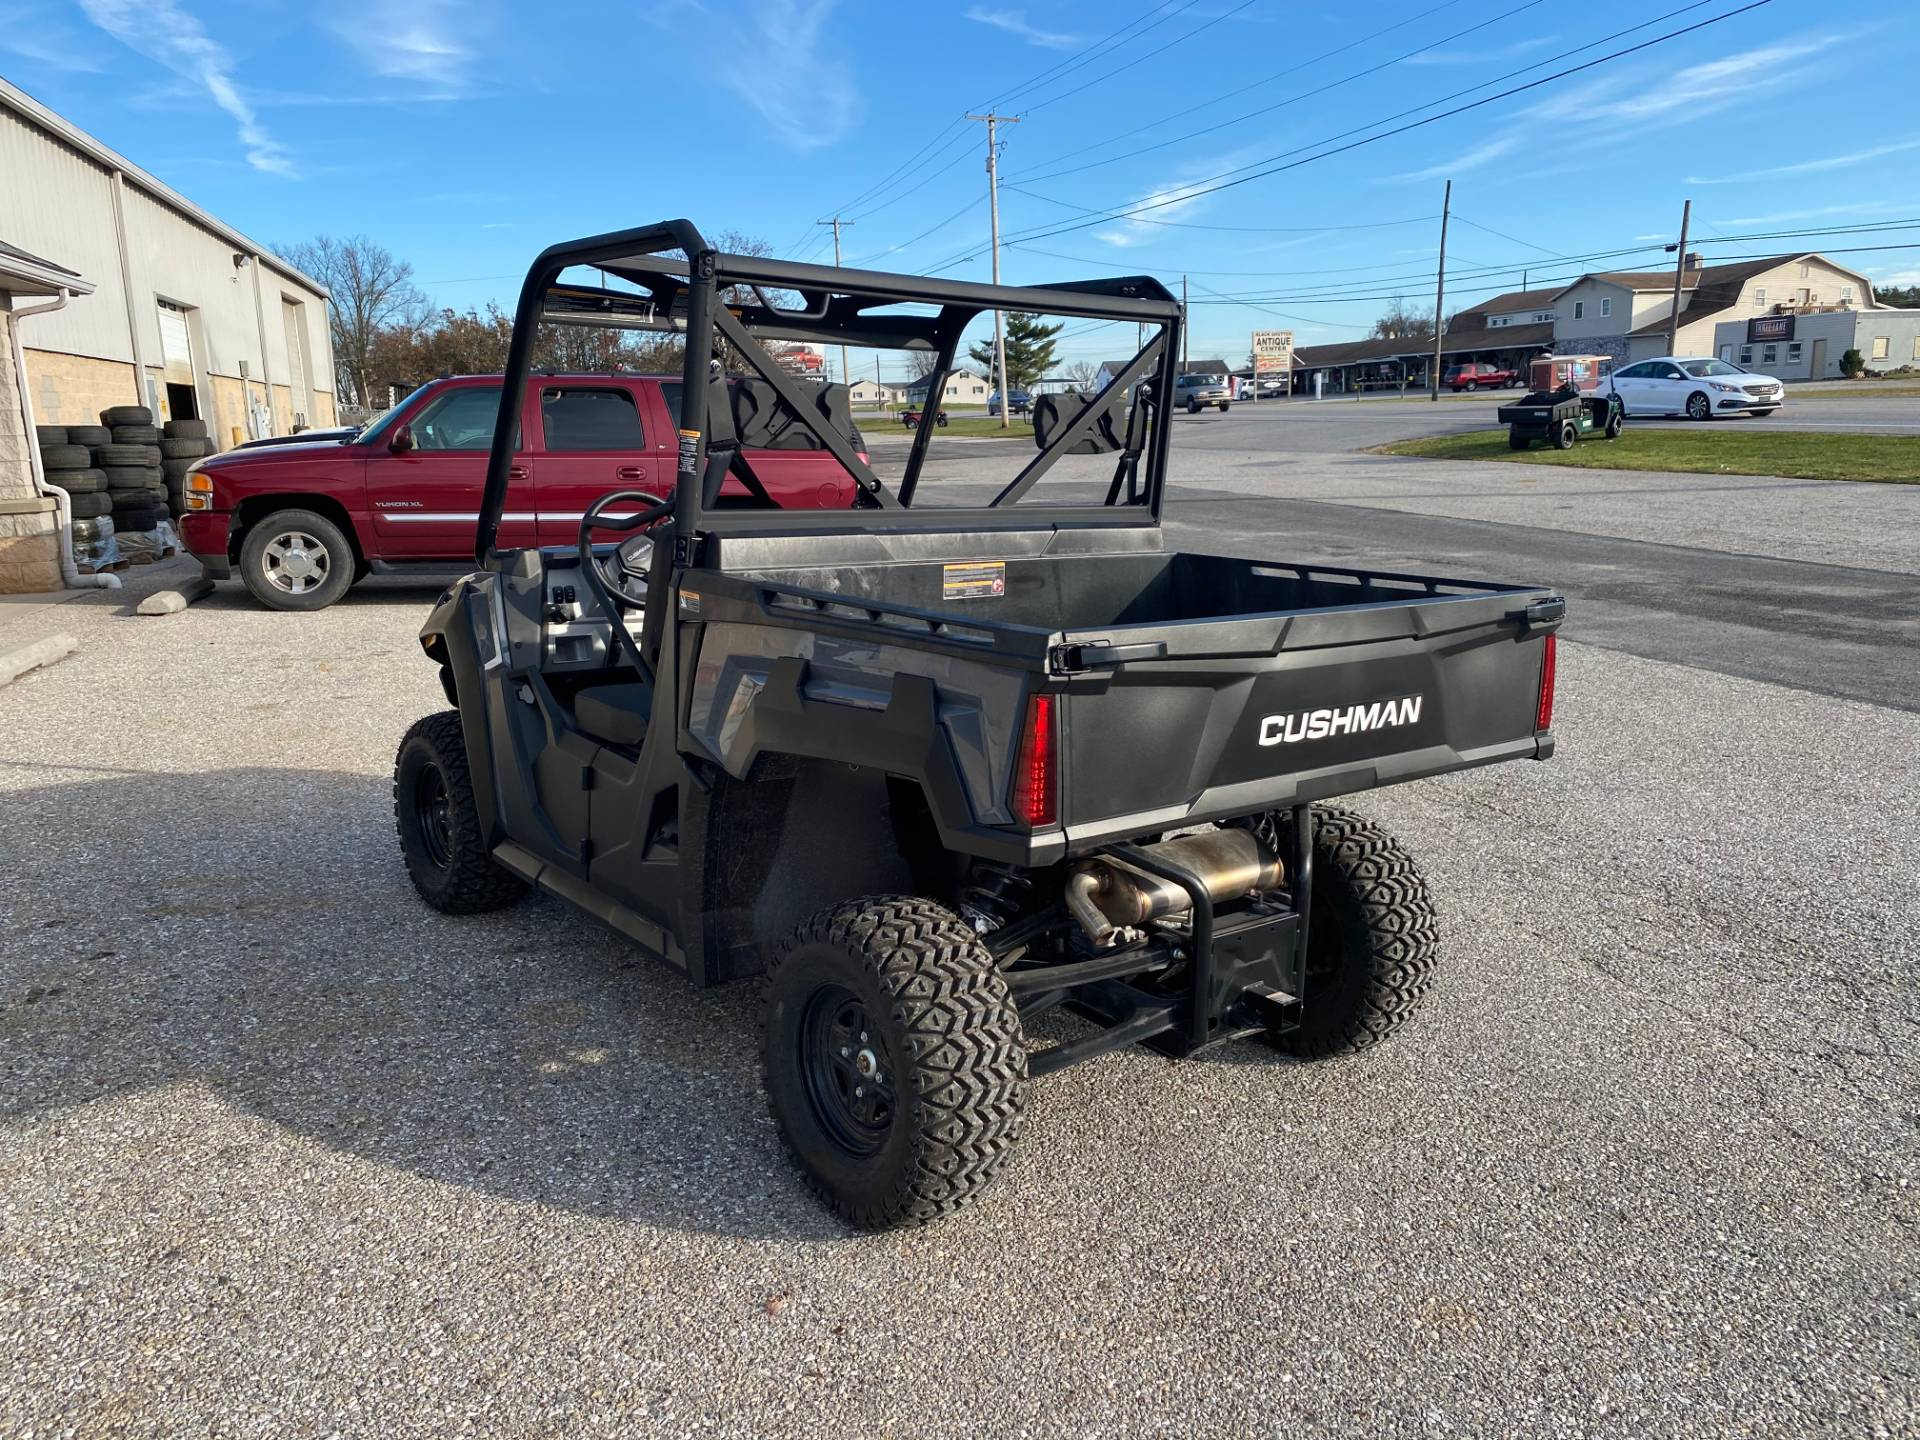 2020 Cushman HAULER 4X4 EFI in New Oxford, Pennsylvania - Photo 3